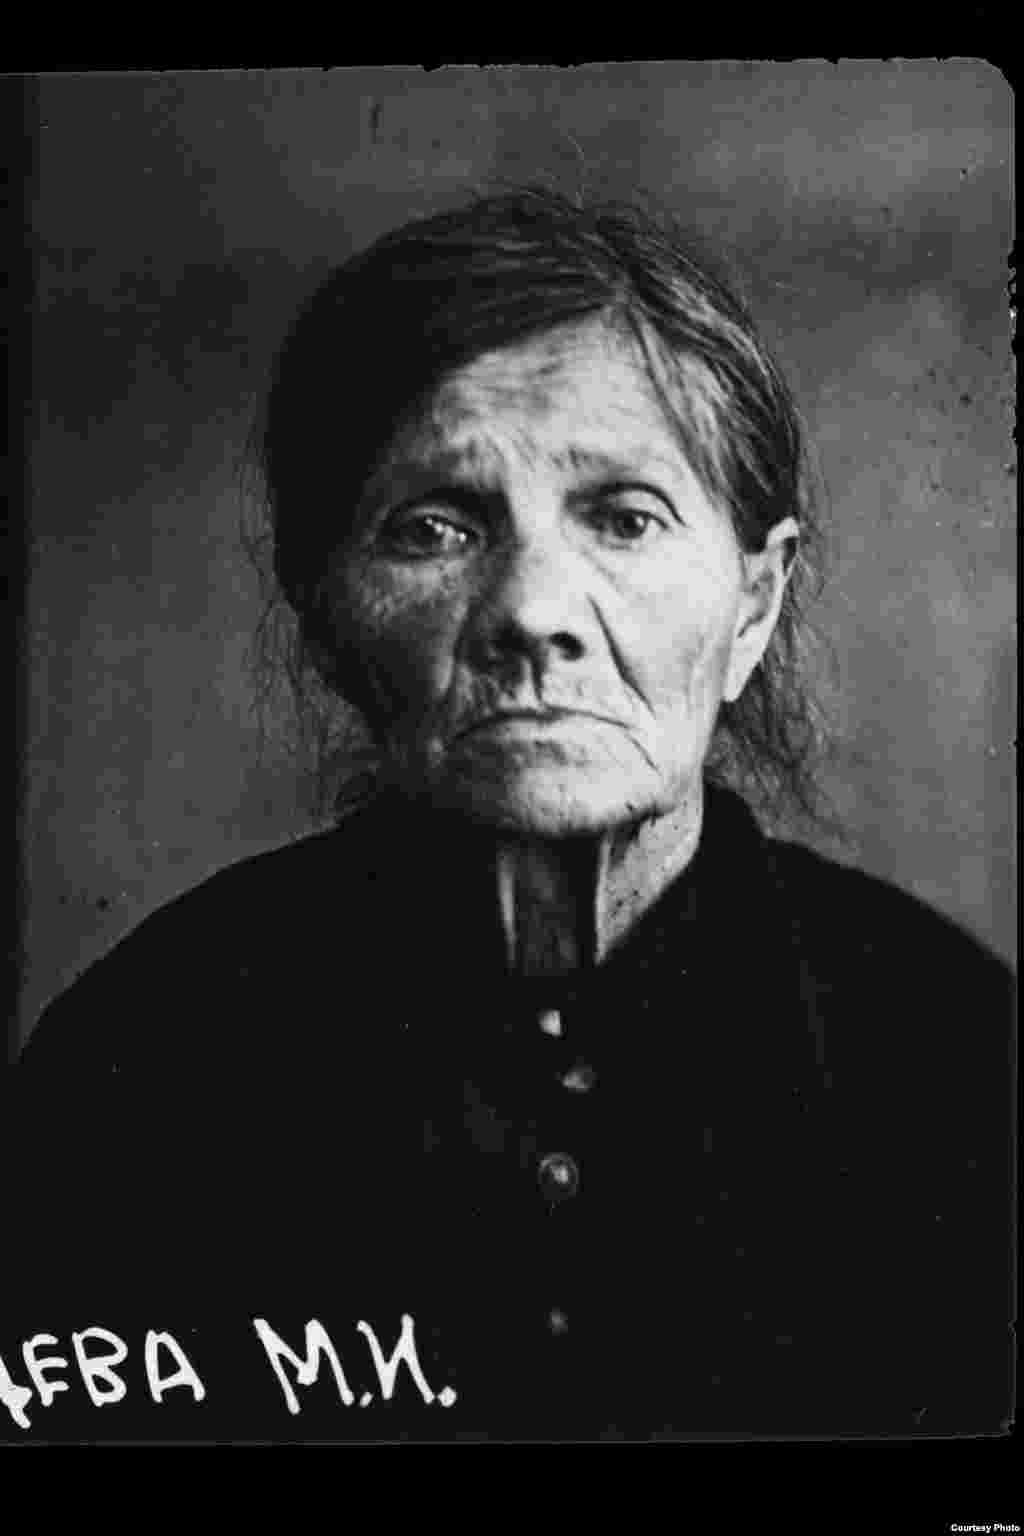 Marfa Ilichna Ryazantseva: Russian; born 1866 in Makhachkala, Tverskaya Oblast; uneducated; no party affiliation; retired; lived in Moscow, 1st Meshchanskaya Street 62/26. Arrested on August 27, 1937. Sentenced to death on October 8, 1937. Executed on October 11, 1937. Rehabilitated in 1989.